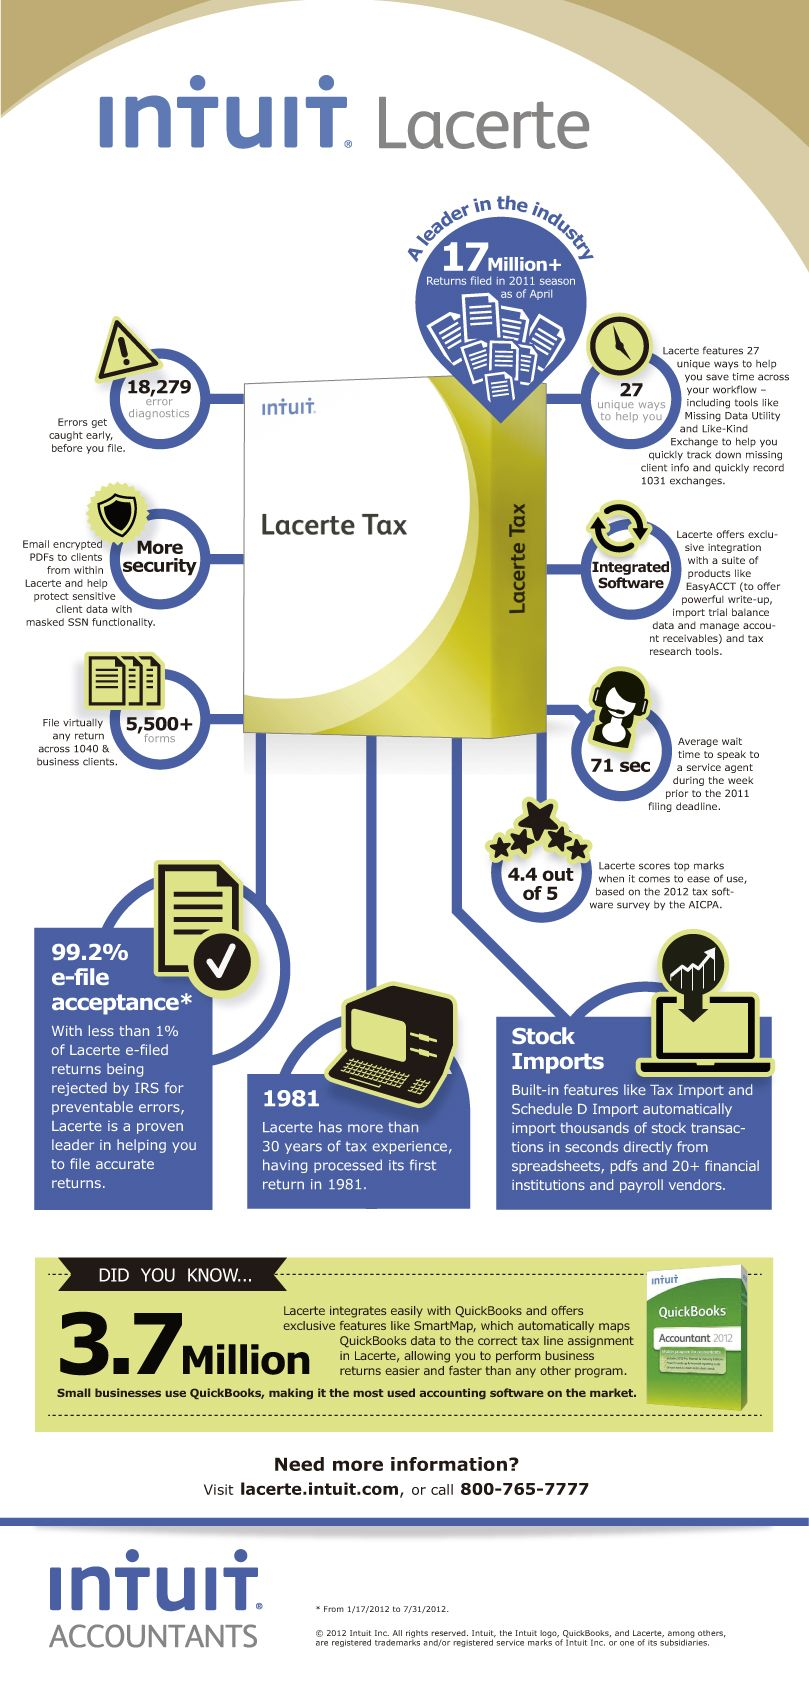 Fun facts about Lacerte Tax Software for professional tax